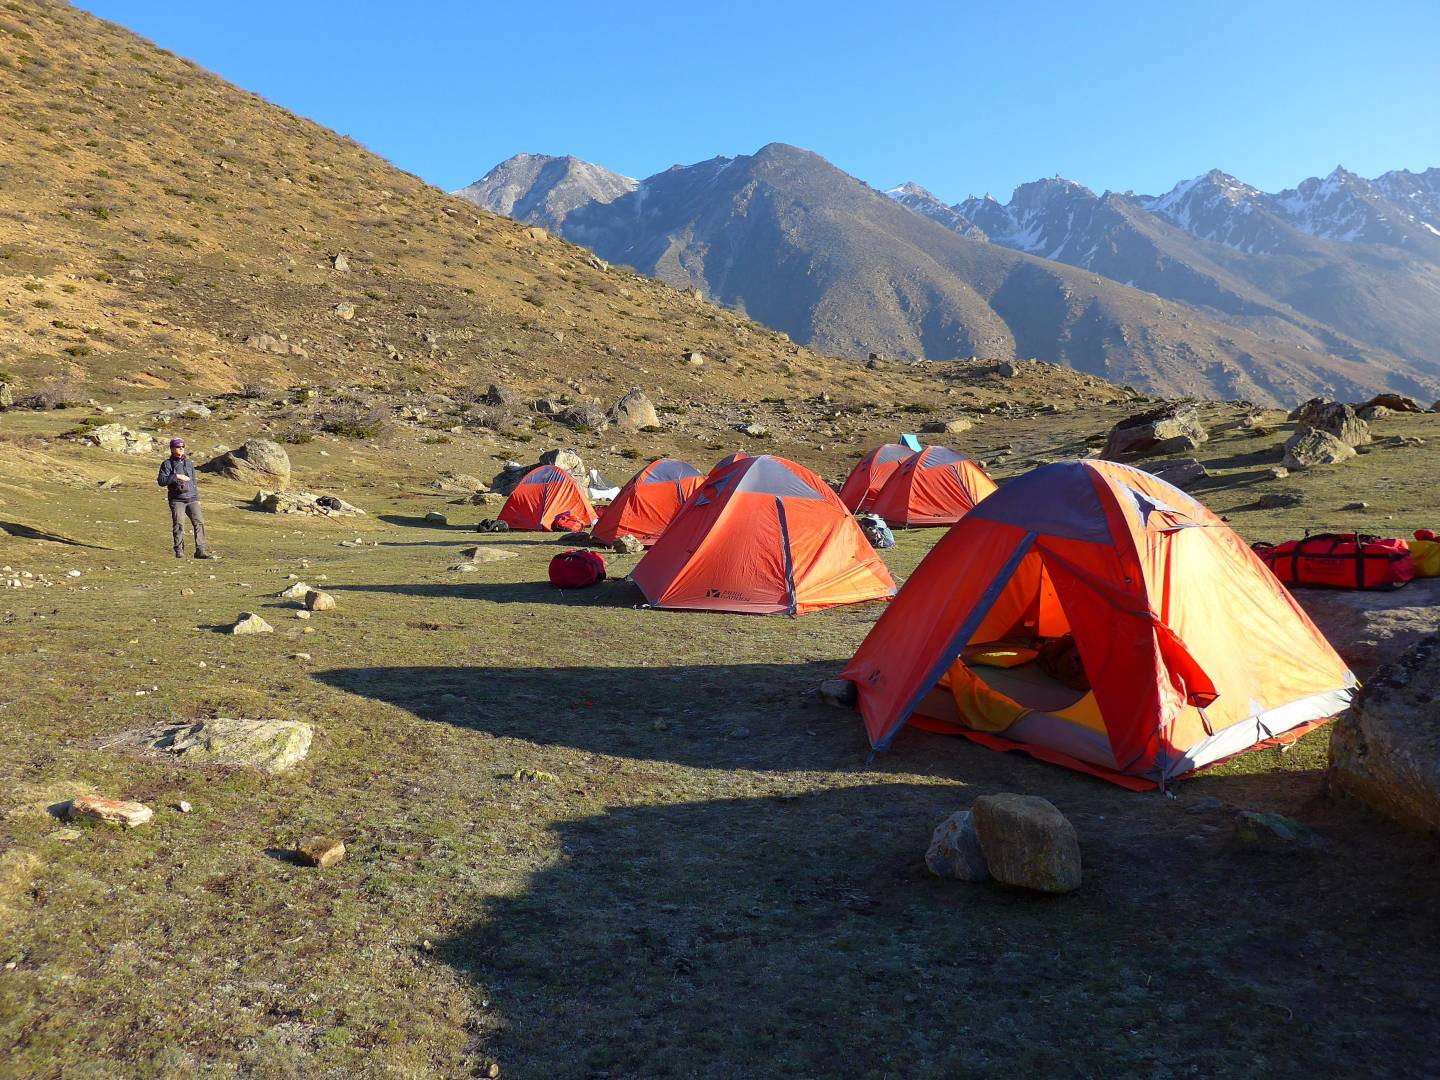 The first campsite. A level area on the side of a mountain at about 4,300metres